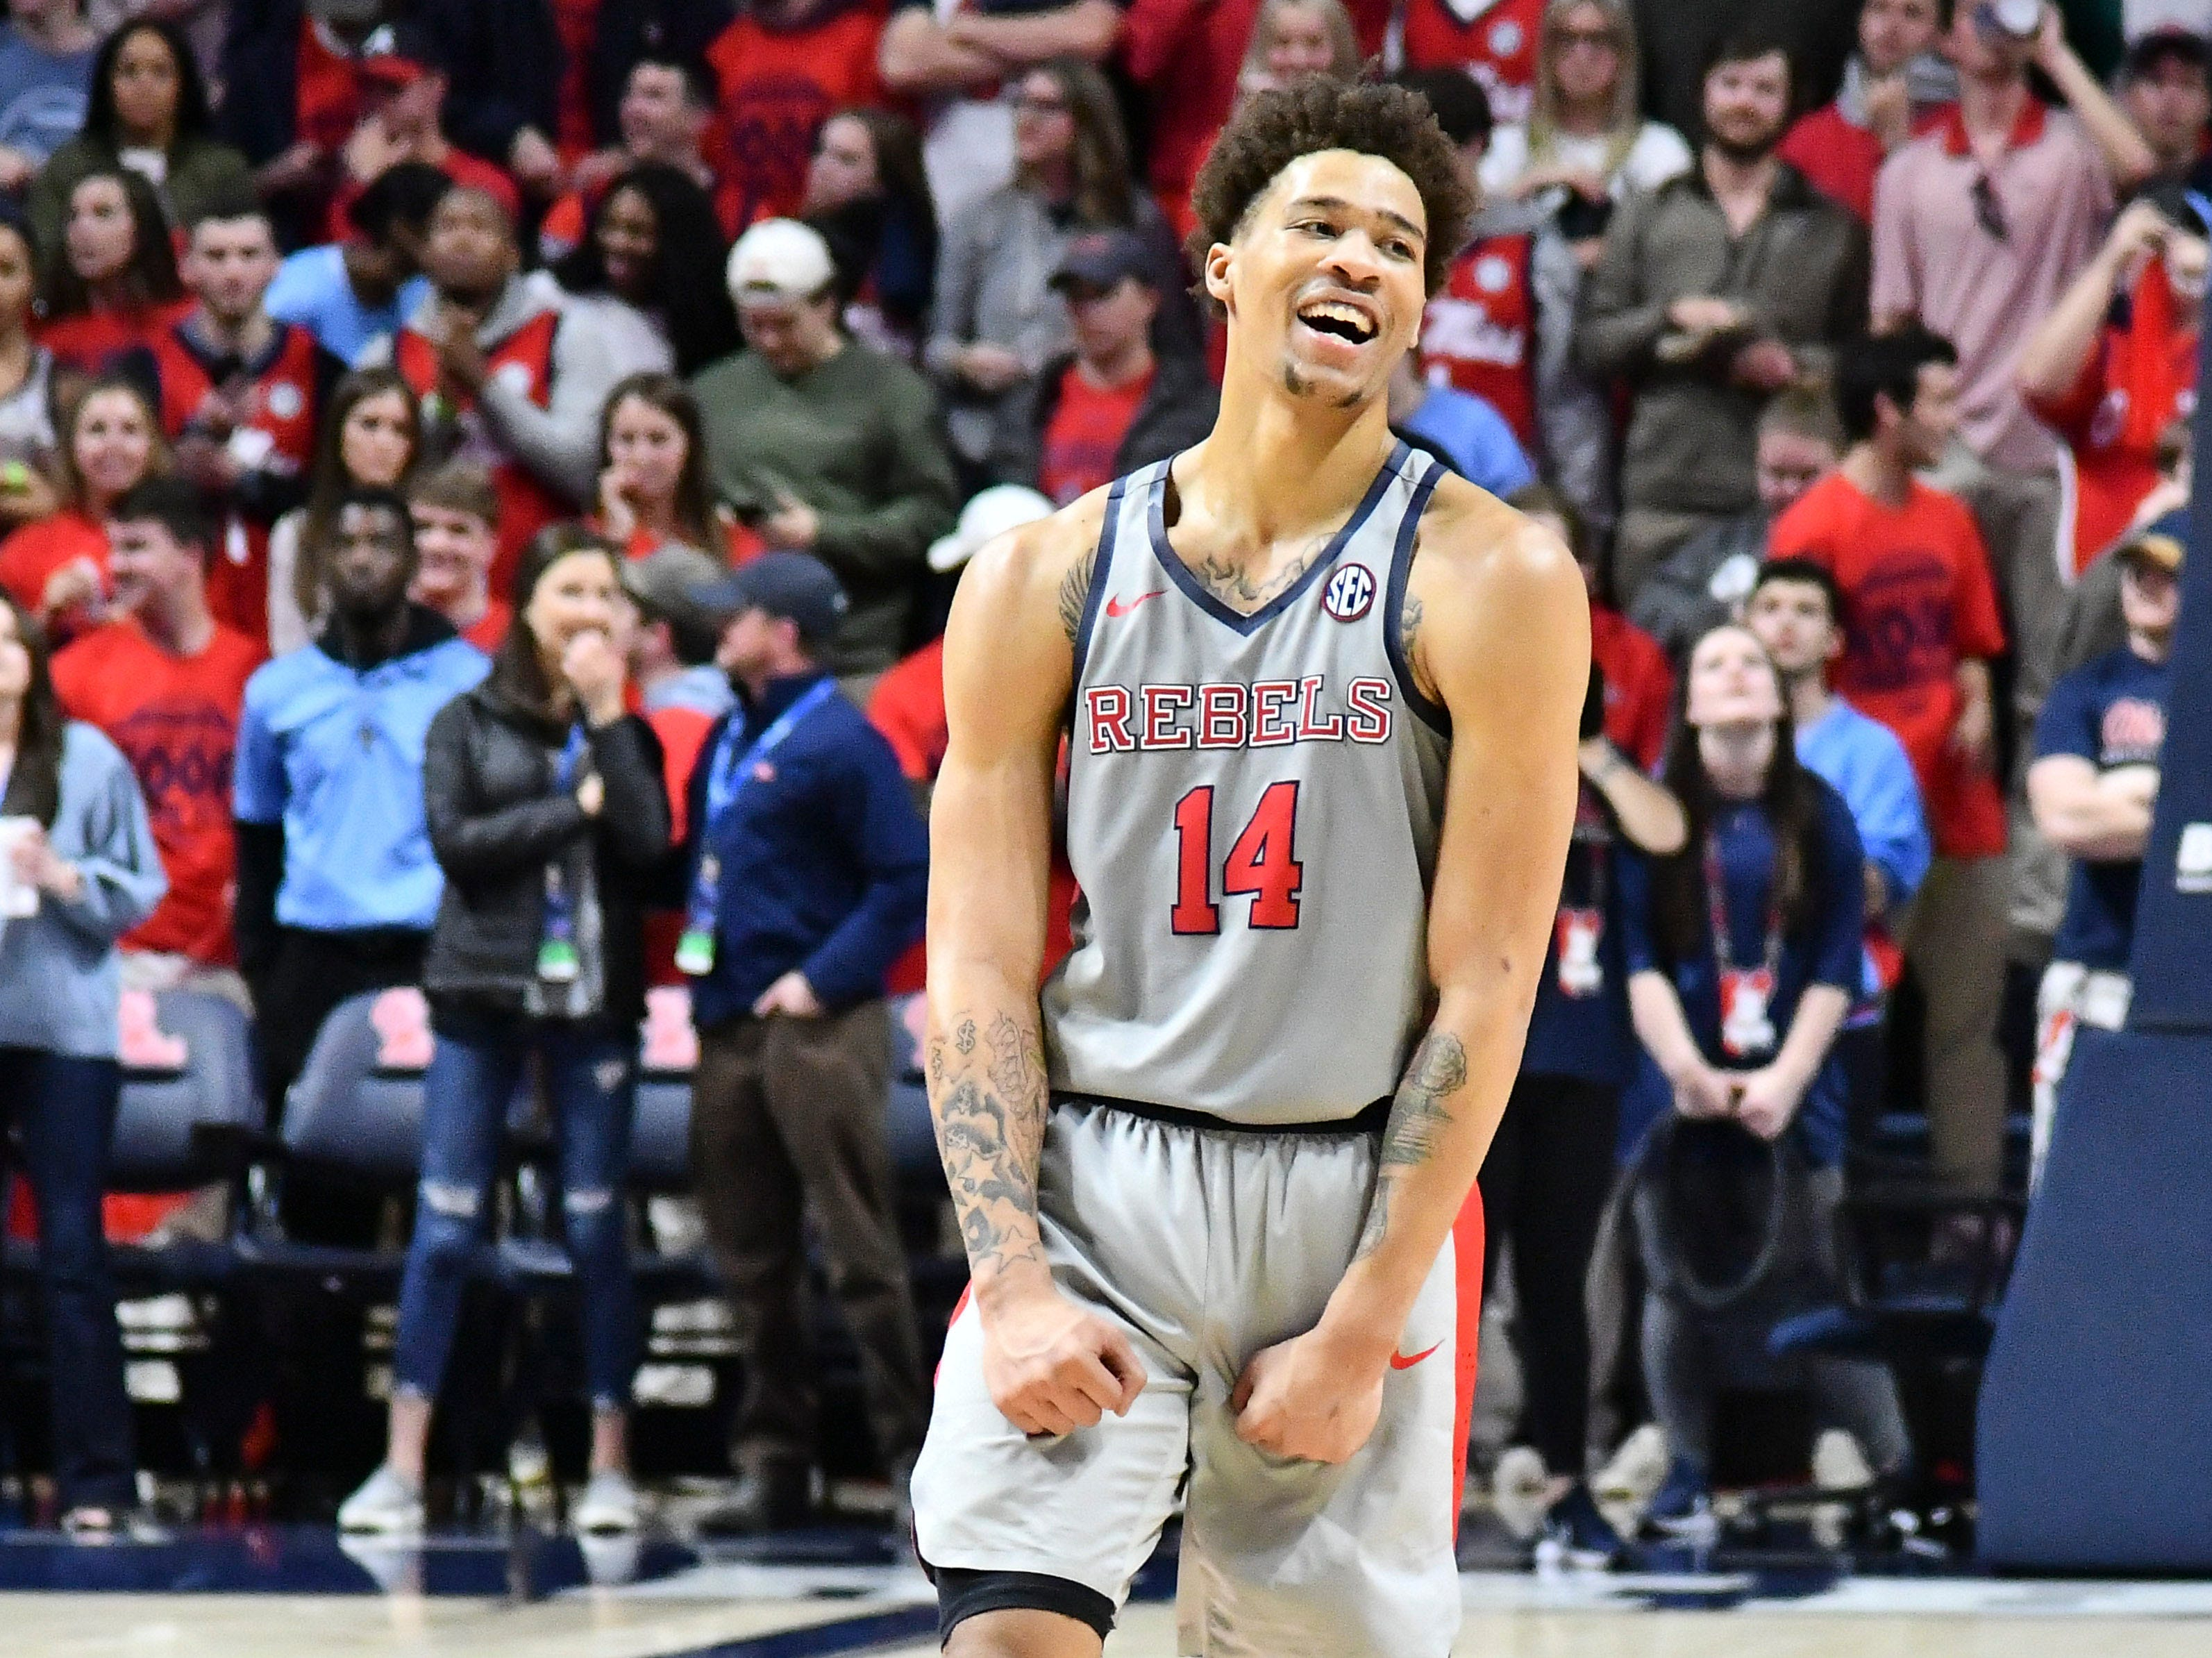 Jan 9, 2019; Oxford, MS, USA; Mississippi Rebels forward KJ Buffen (14) reacts during the second half of the game against the Auburn Tigers at The Pavilion at Ole Miss. Mandatory Credit: Matt Bush-USA TODAY Sports